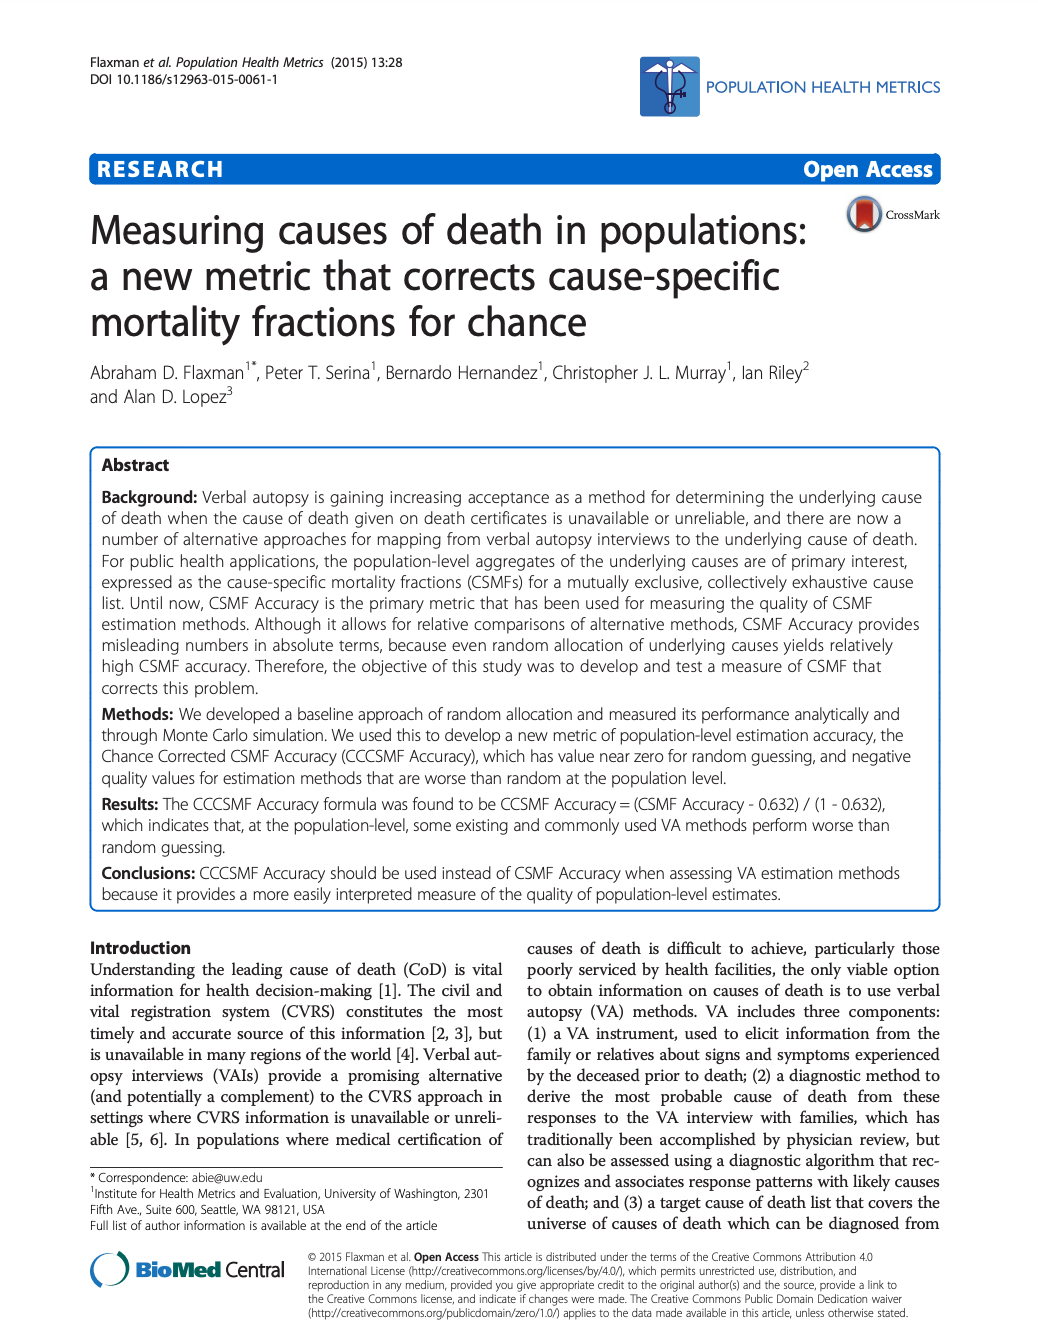 Measuring causes of death in populations: a new metric that corrects cause-specific mortality fractions for chance thumbnail